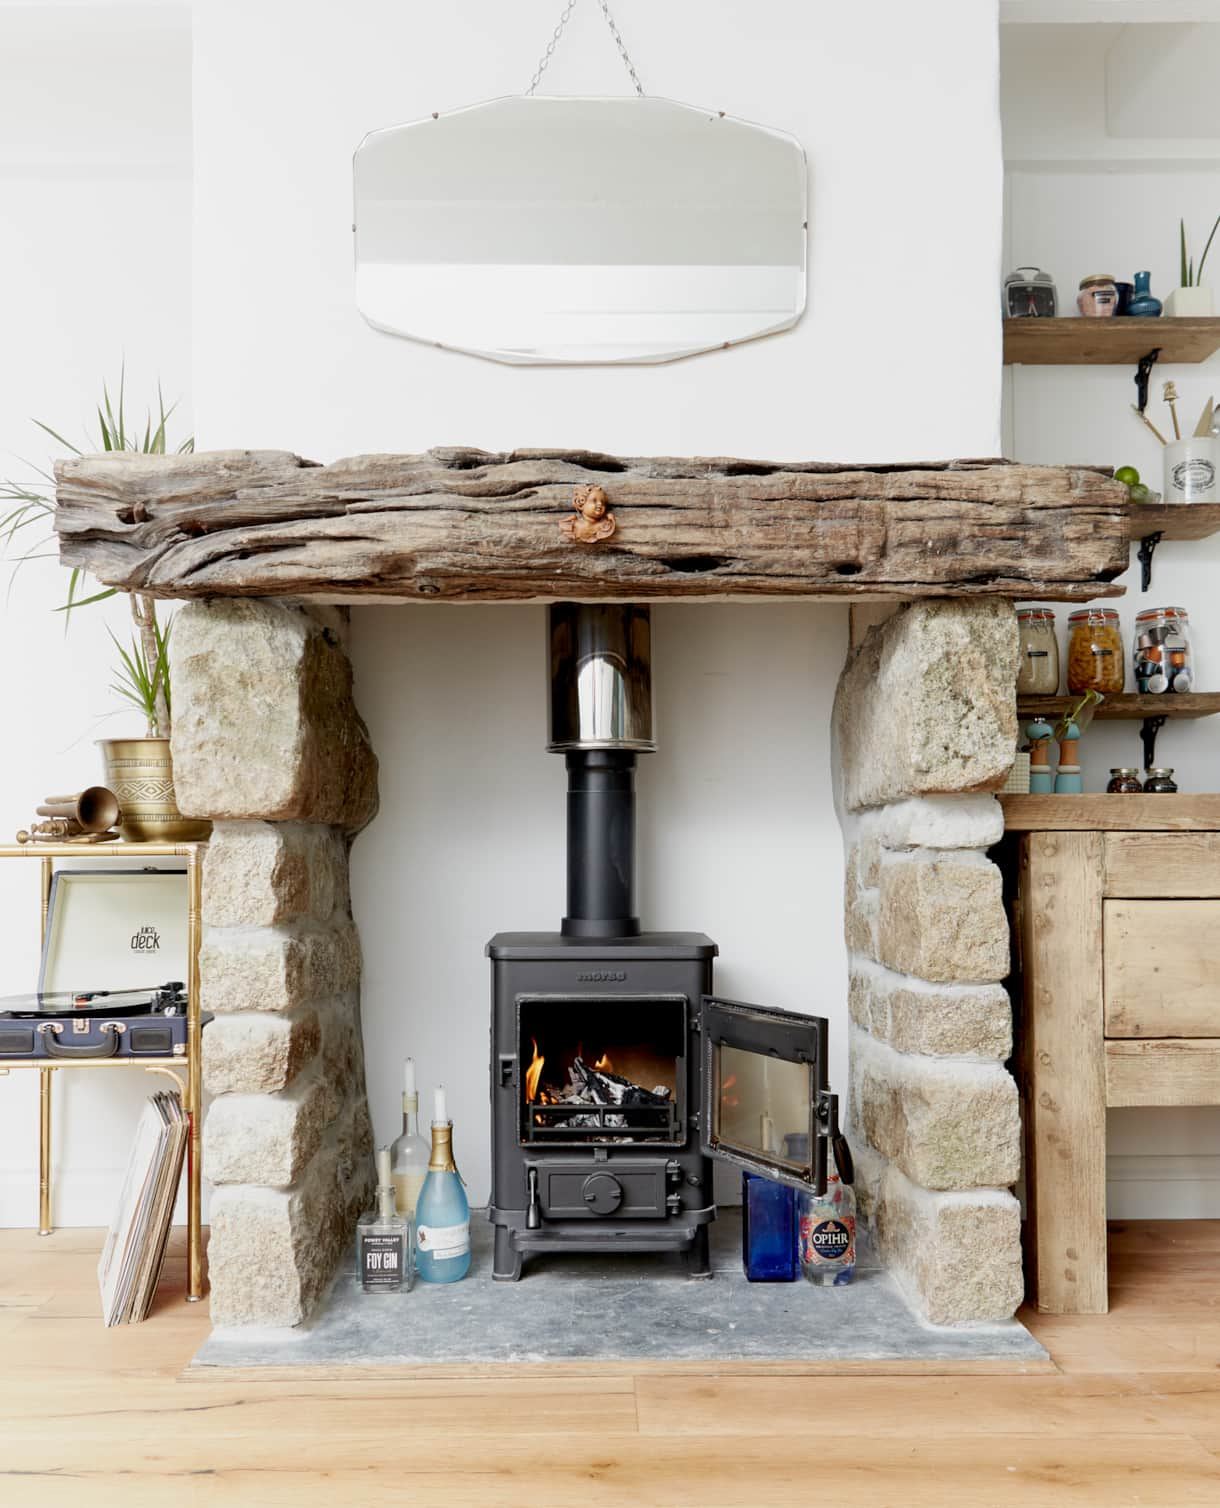 Woodburning Stove - Poachers Pocket - Boutique Luxury Holiday Cottage - Cornwall - Hellandbridge